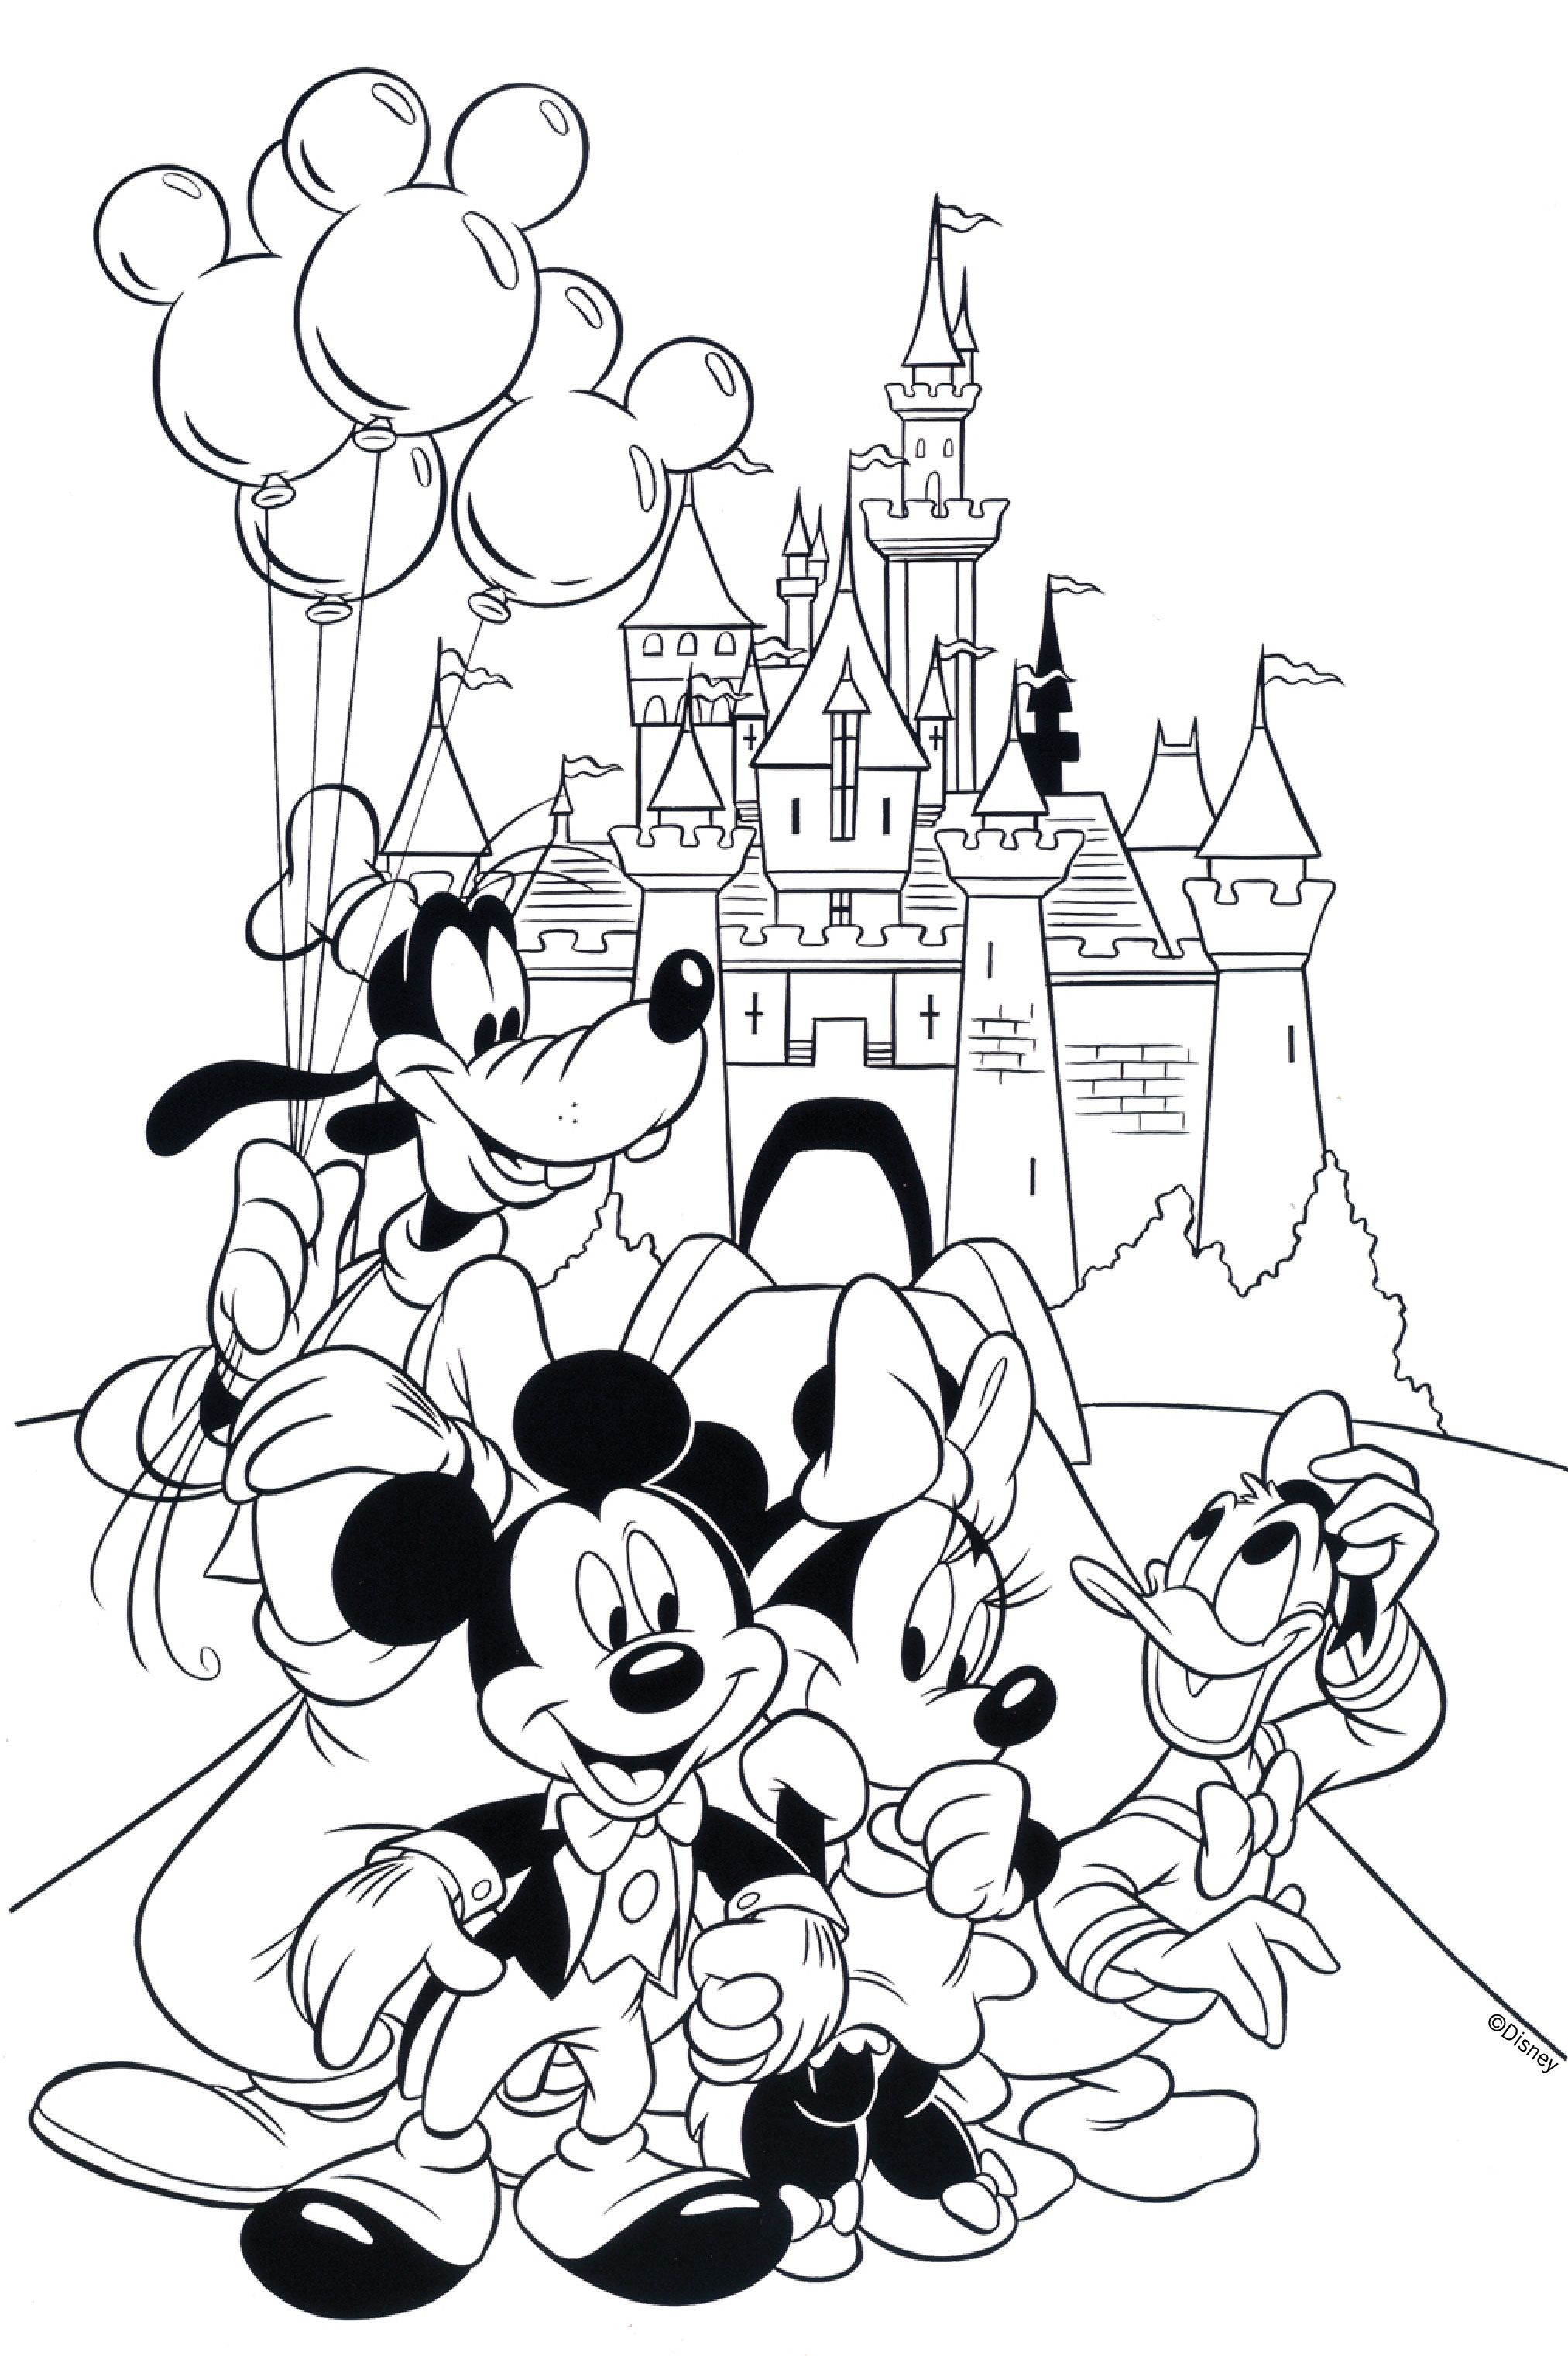 Free Disney Coloring Pages | Coloring Books | Free disney coloring ...